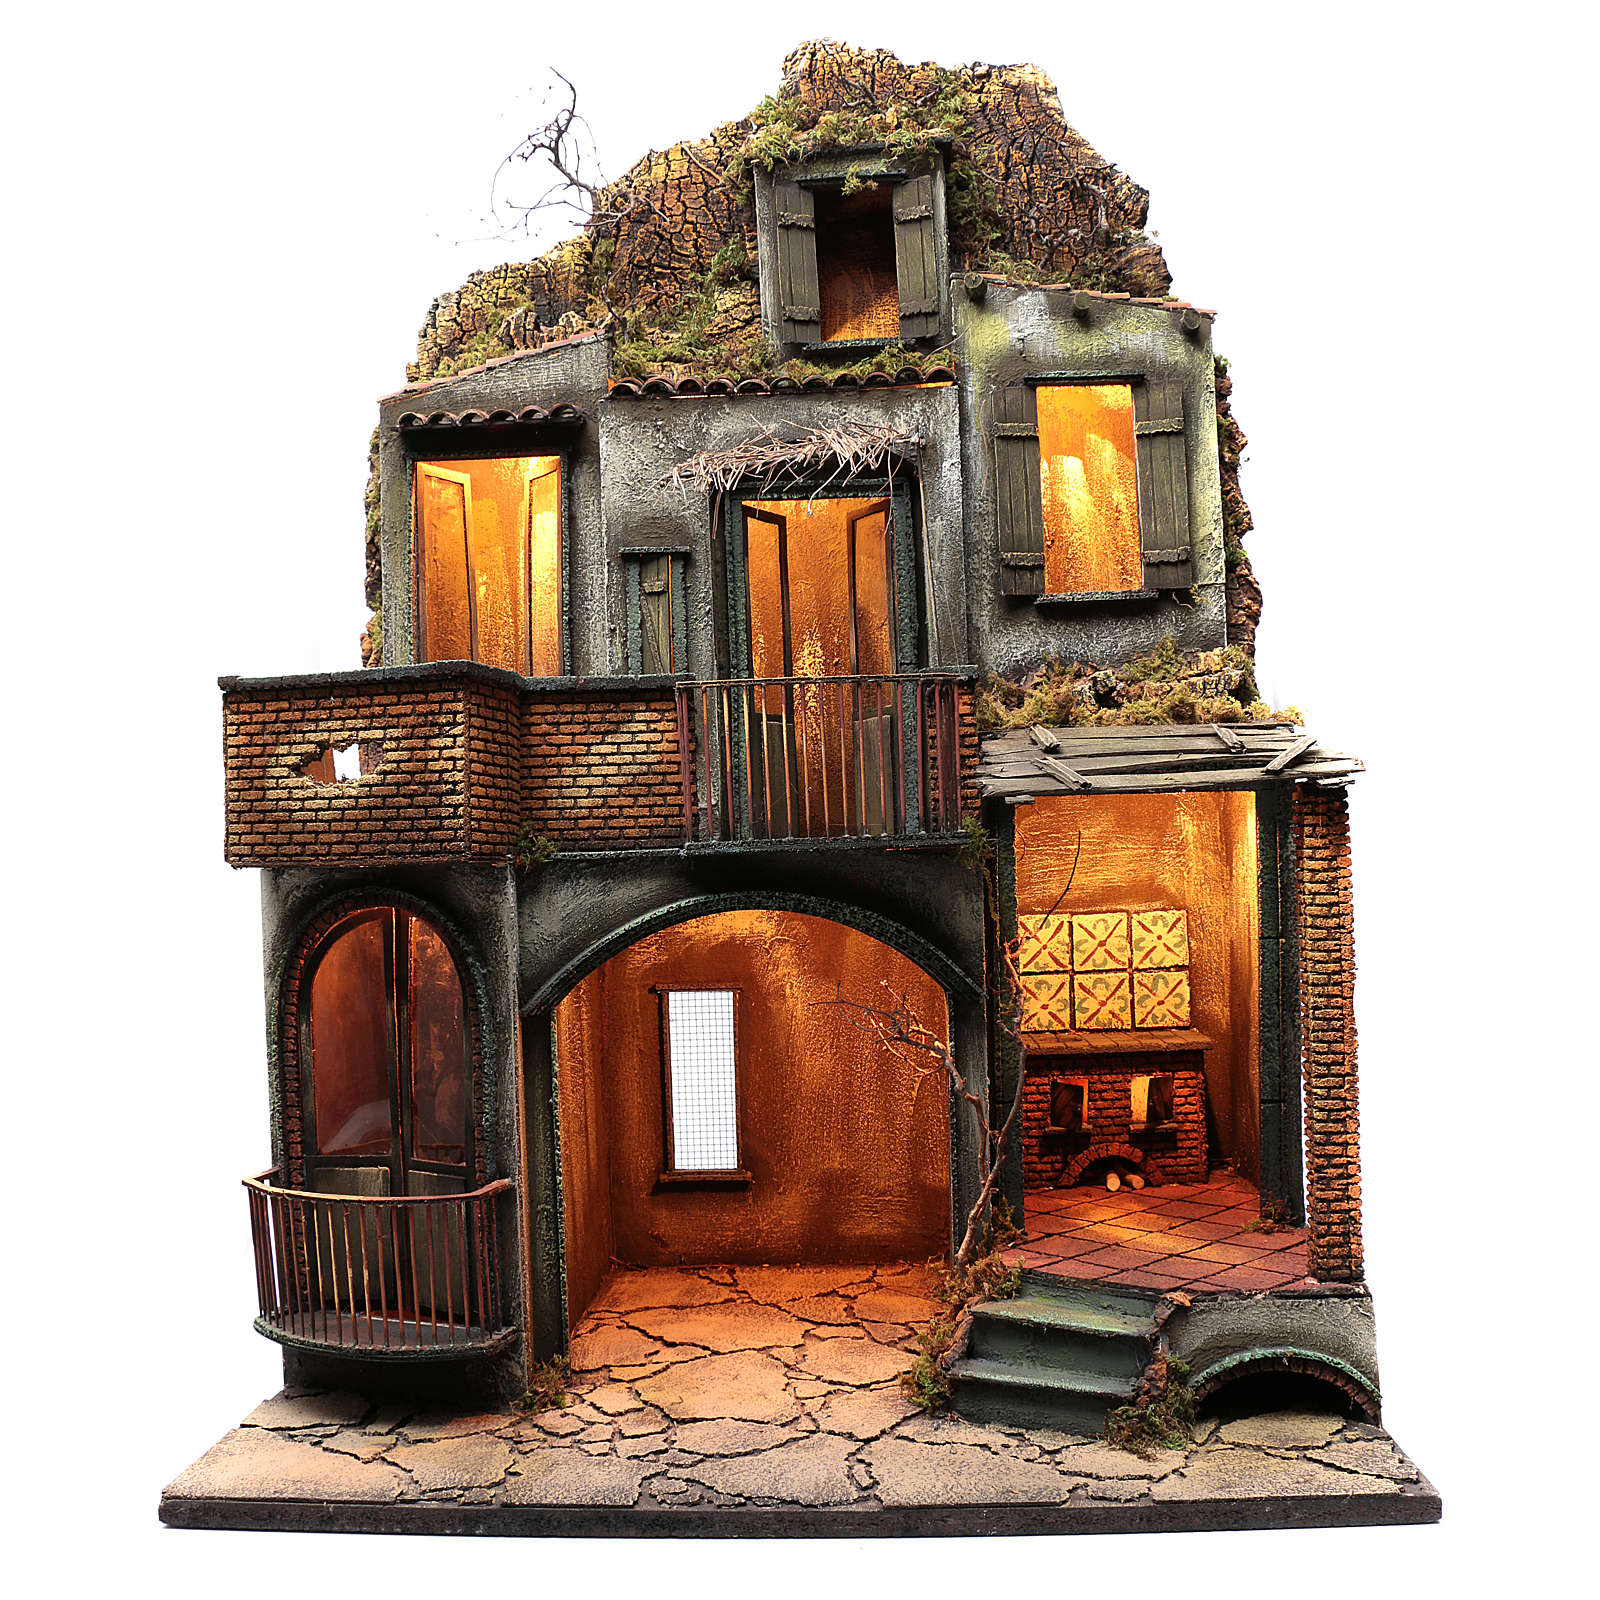 Neapolitan nativity scene setting house hut and fireplace with light 115x80x60 cm 4